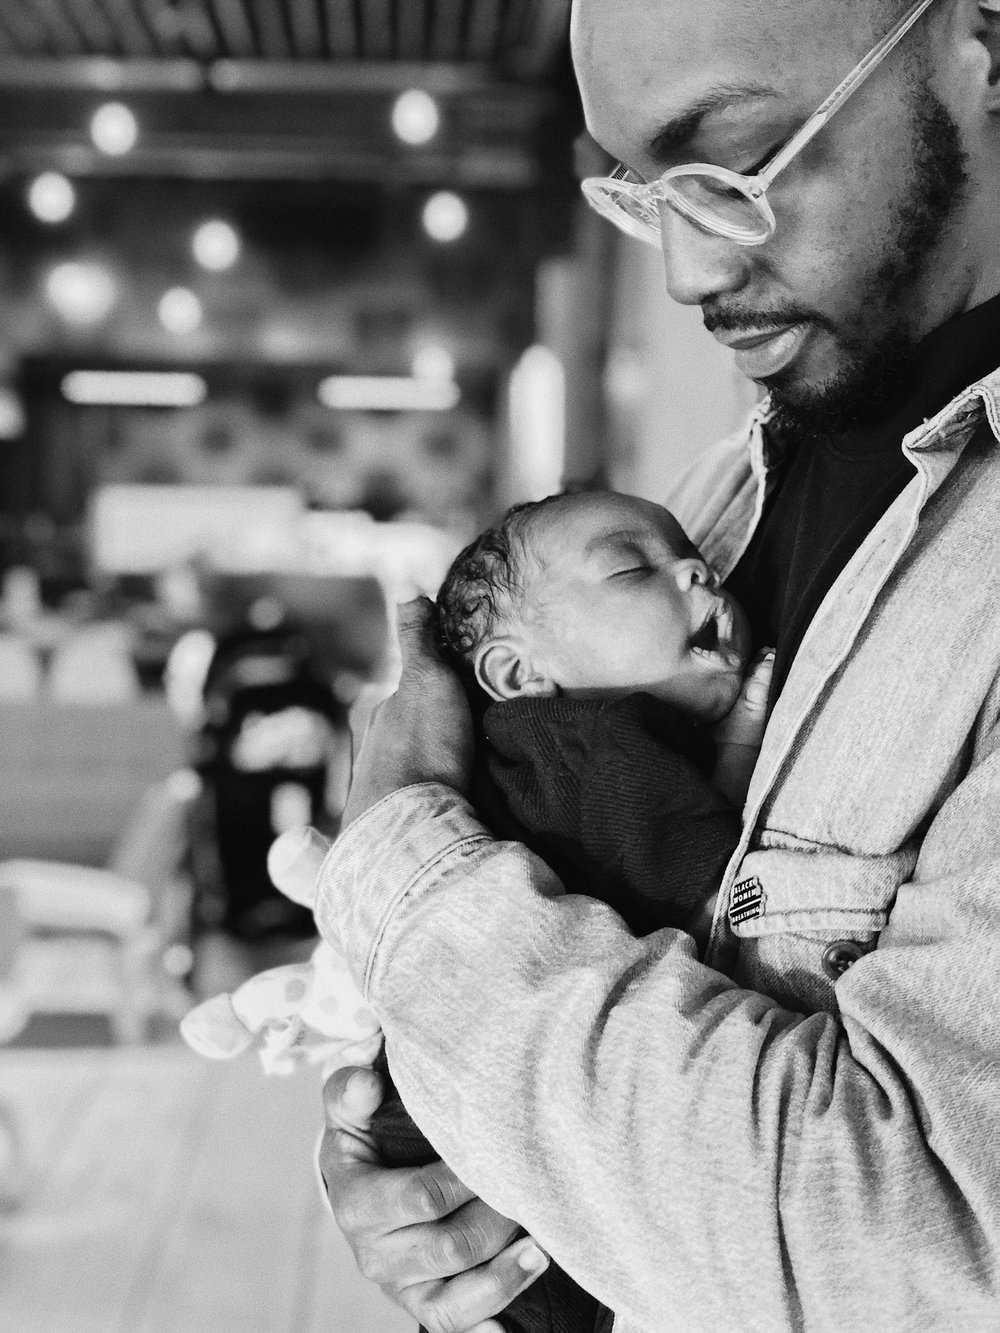 Adrian and his newborn daughter Emory,photo courtesy of Michael Lyon